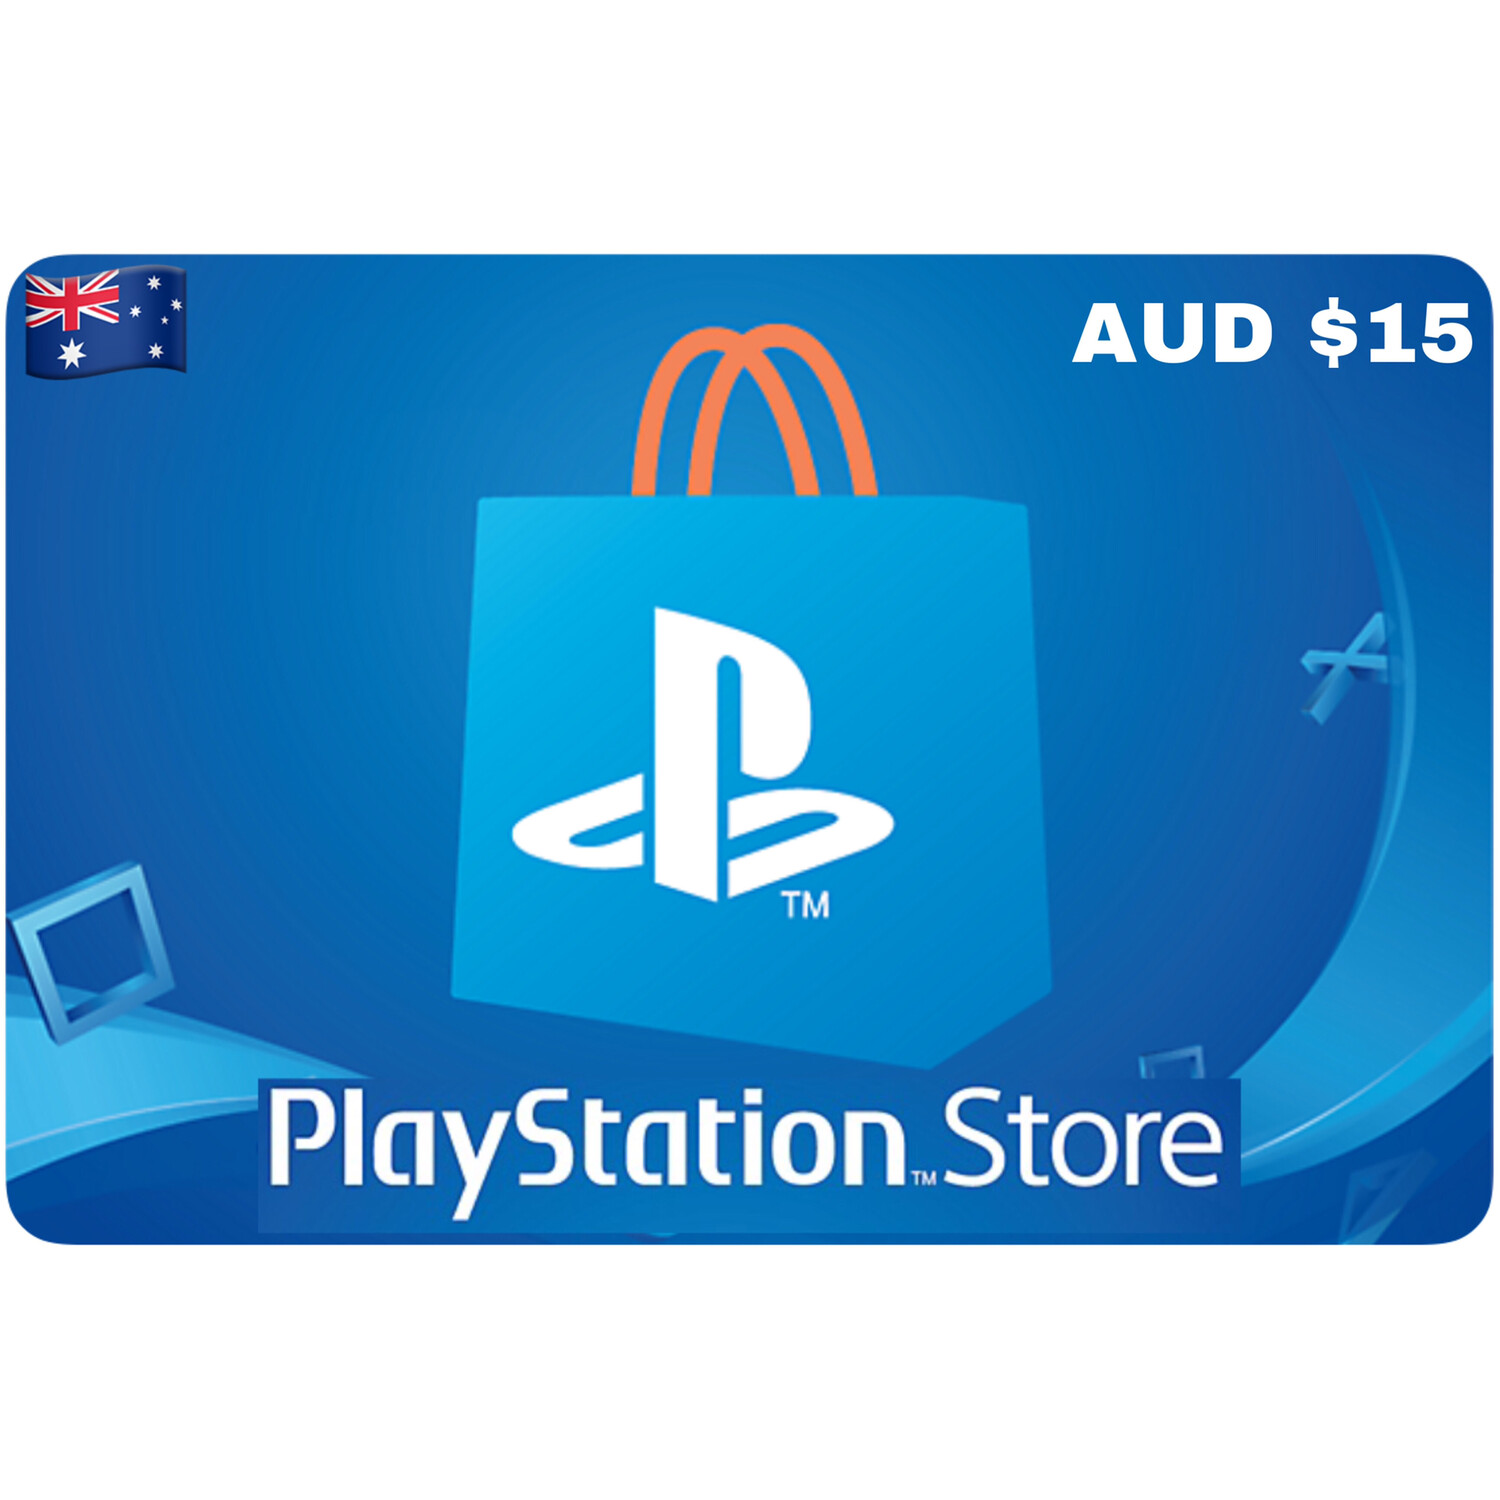 Playstation Store Gift Card Australia AUD $15